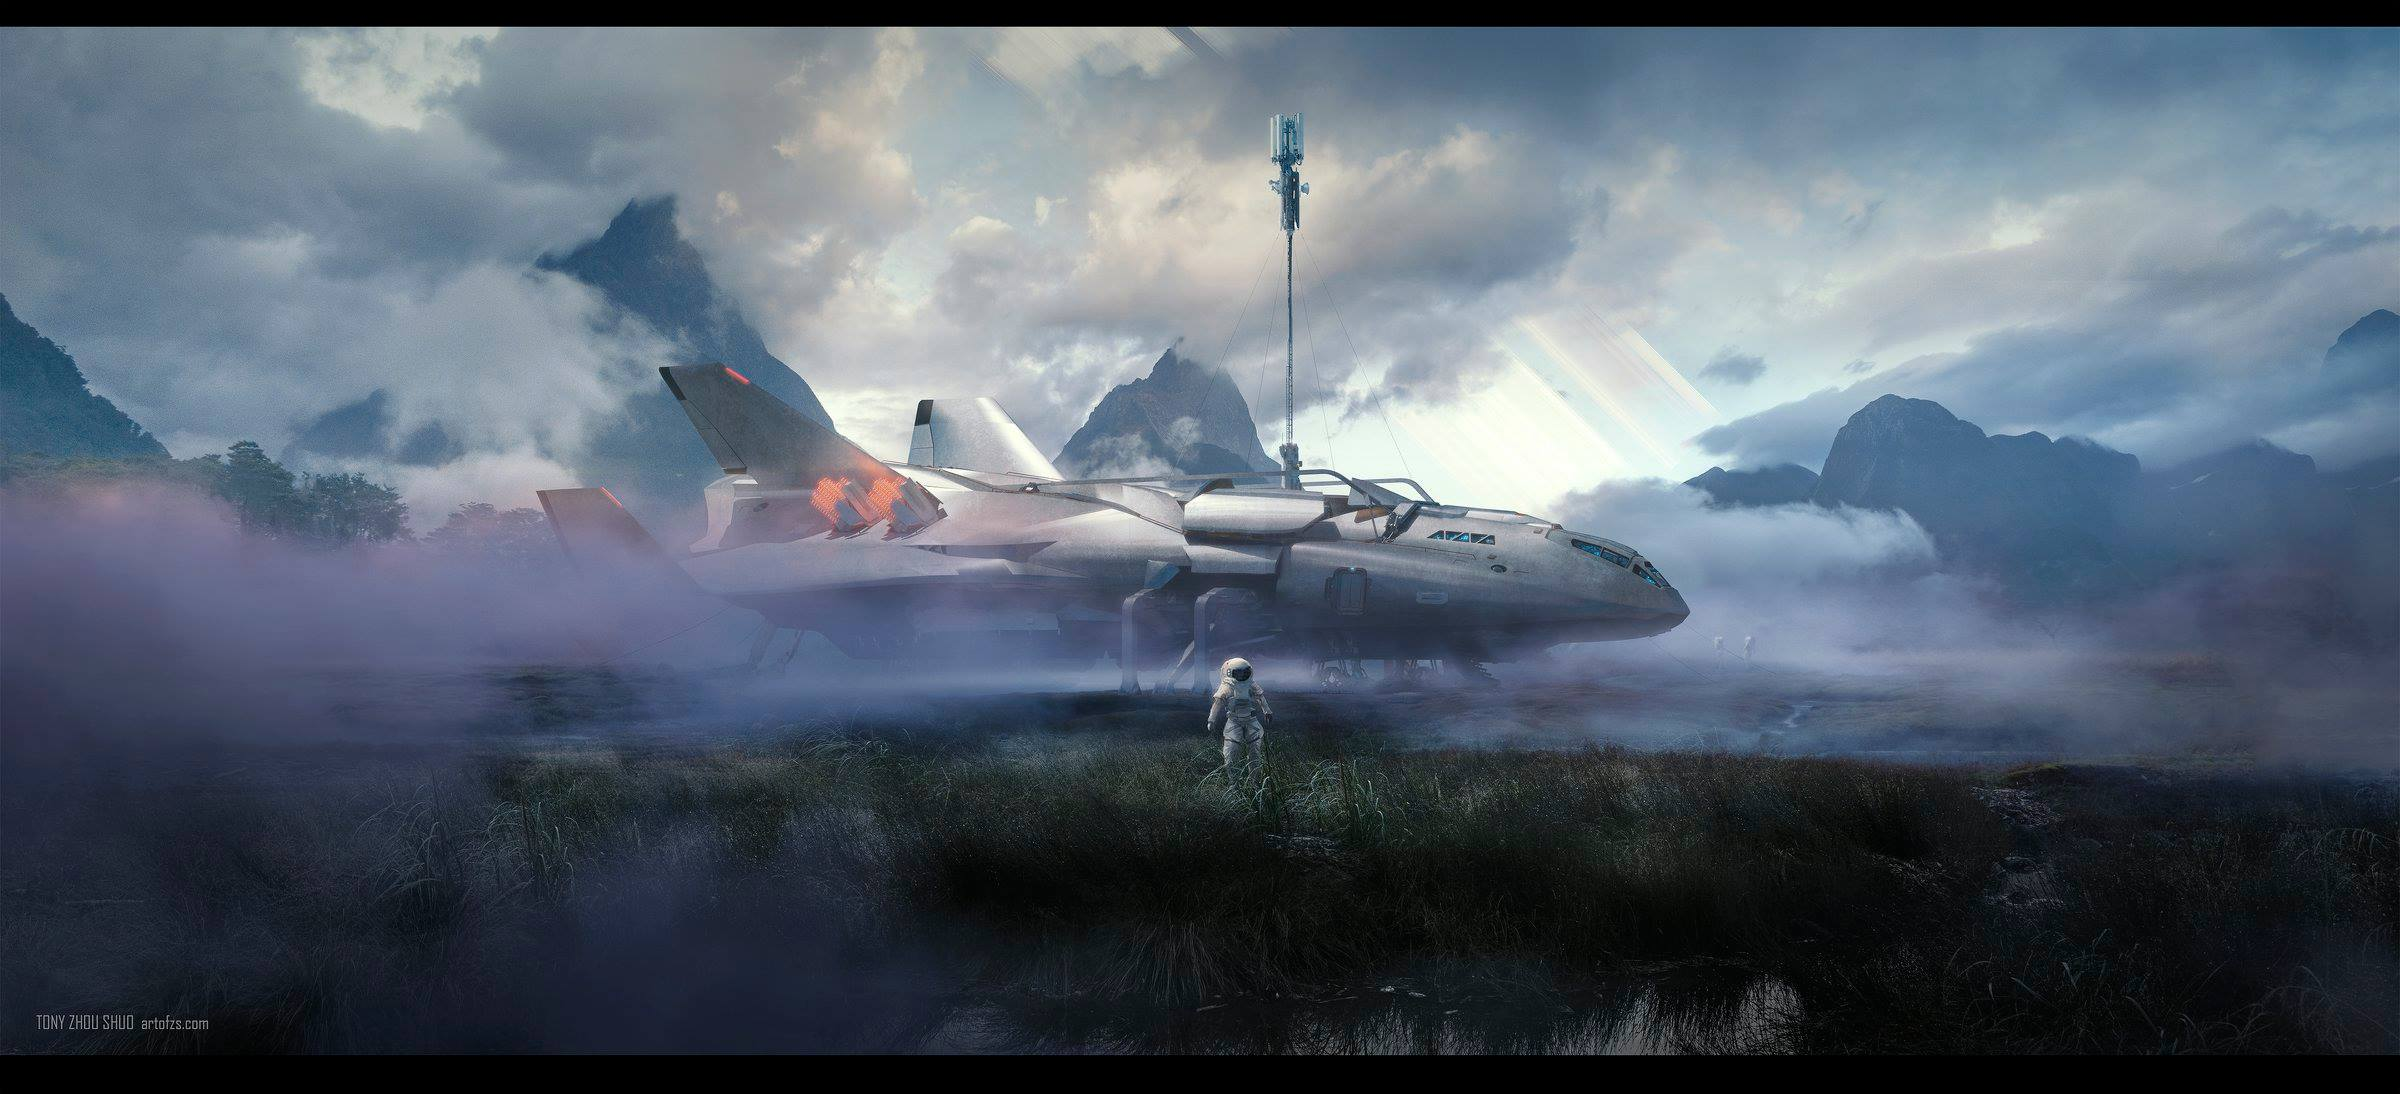 Amazing Sci-Fi Artworks by Tony Zhou Shuo